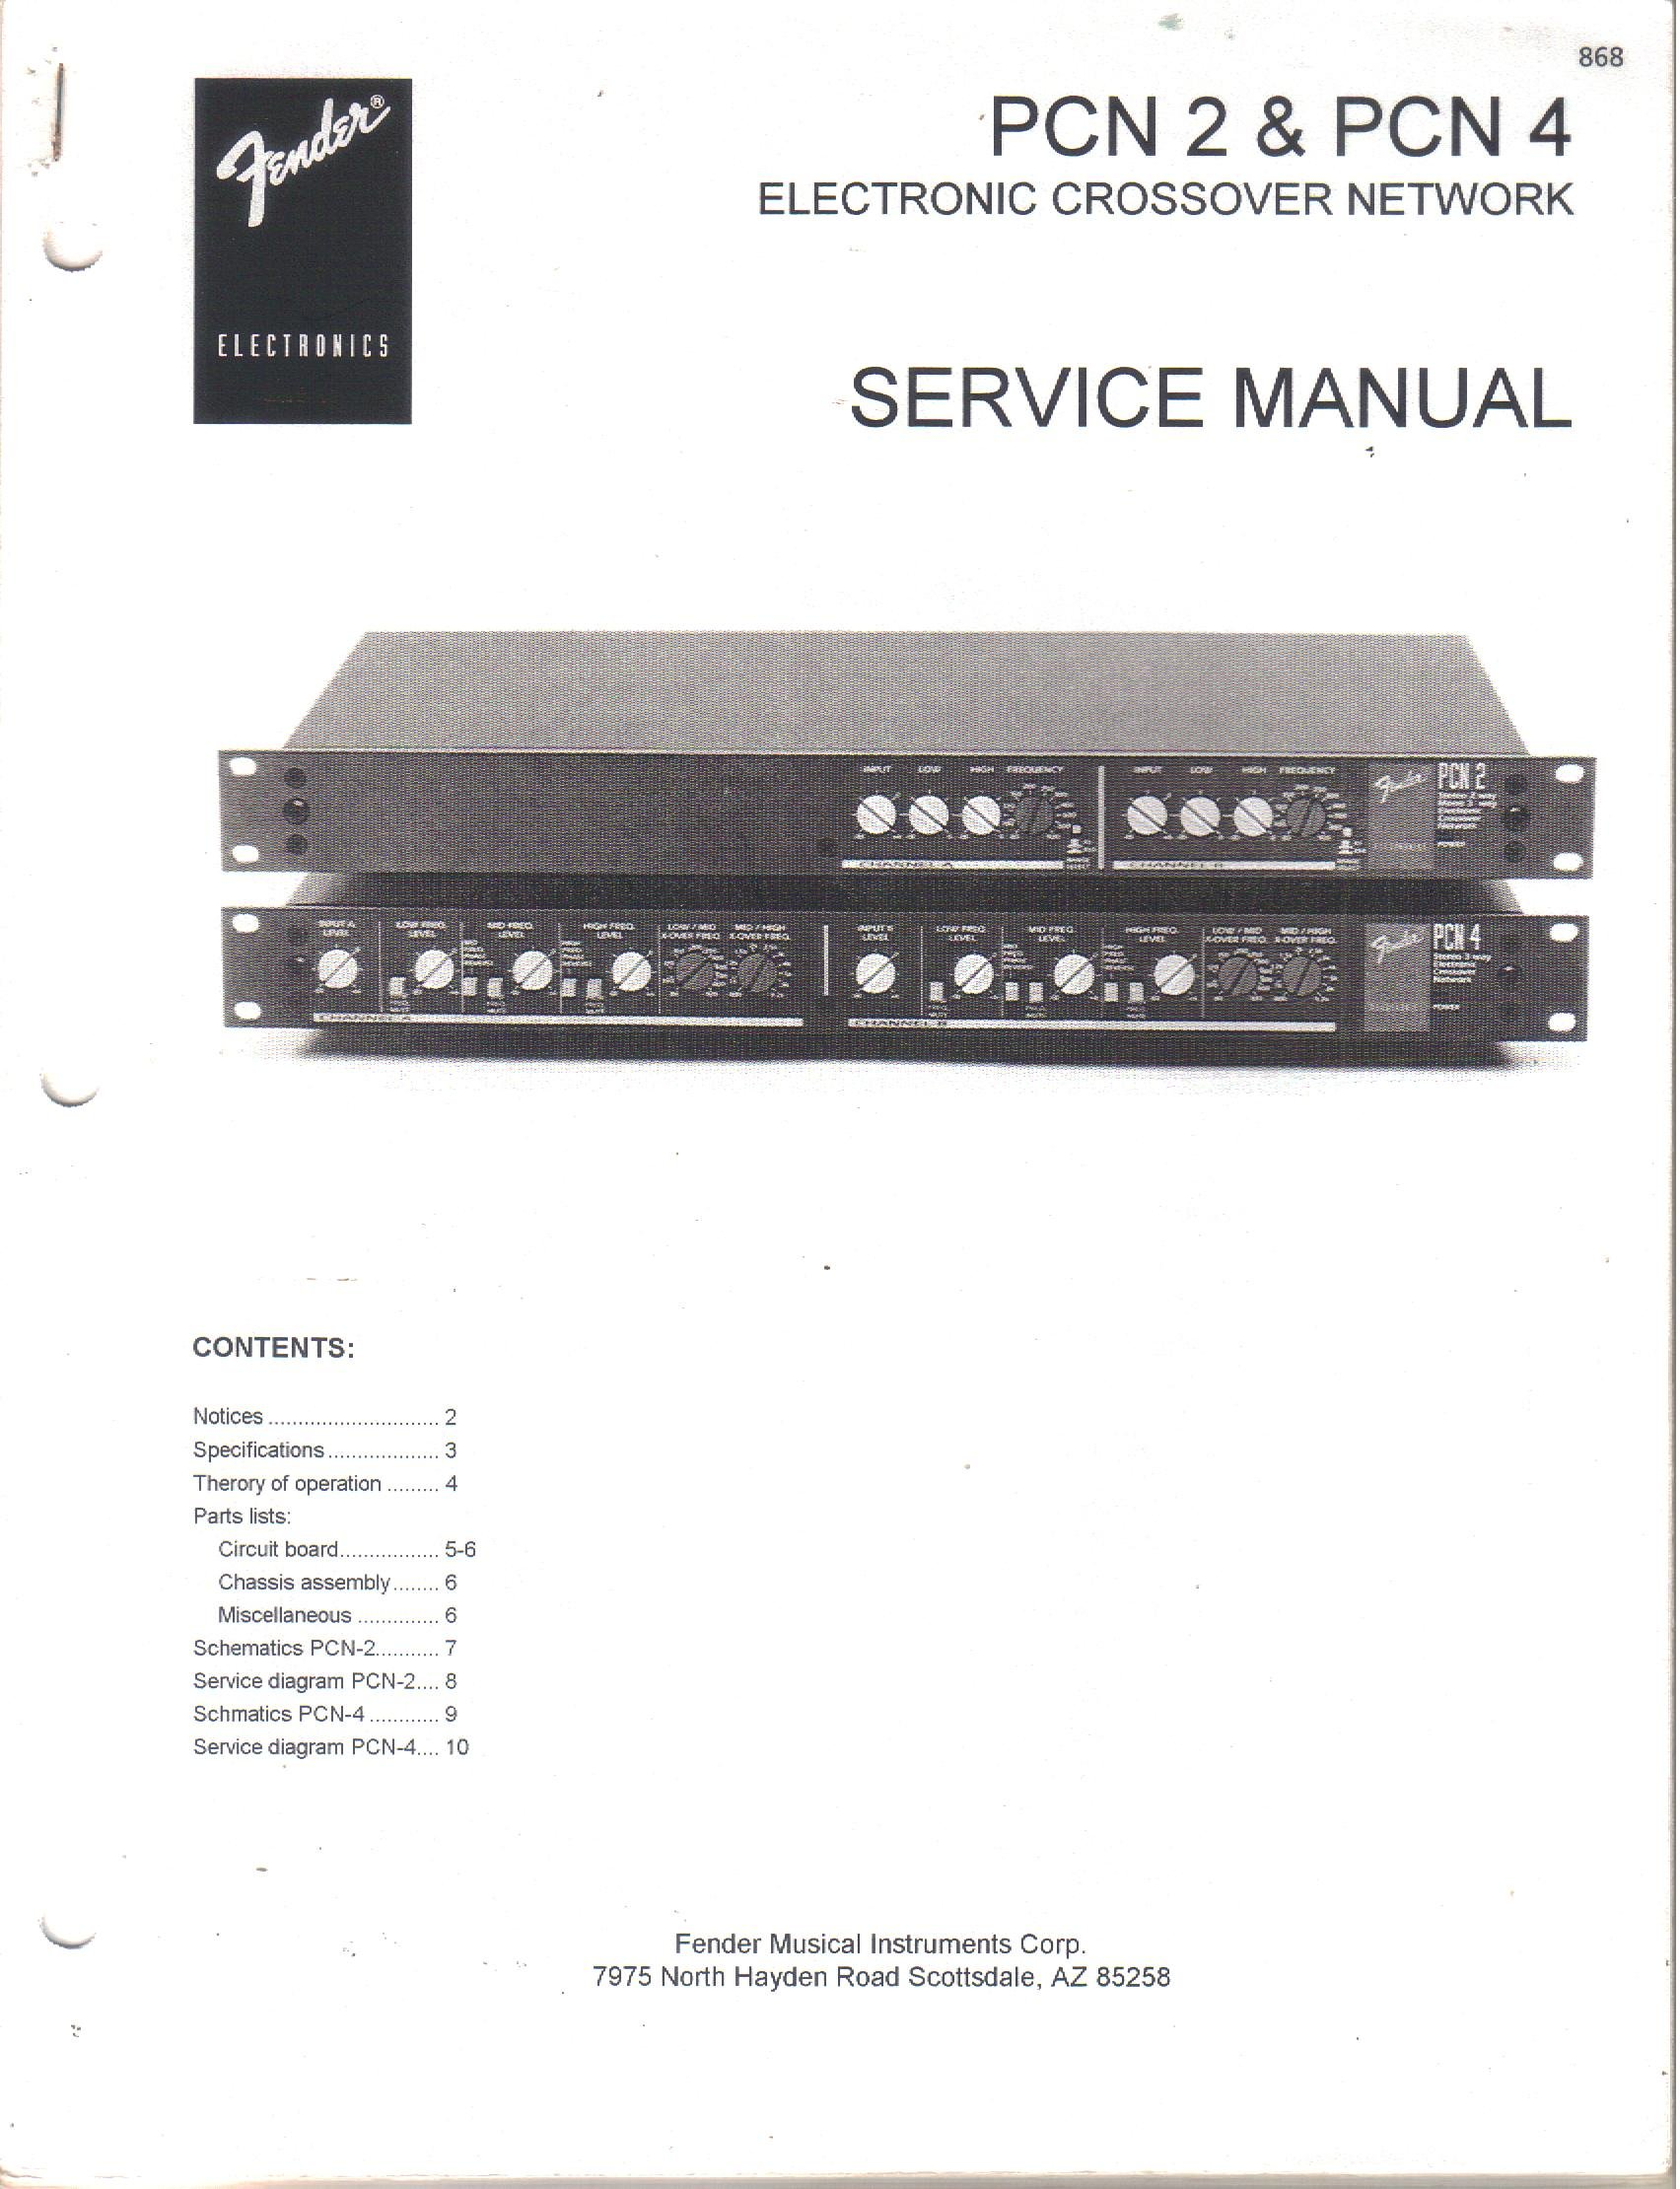 fender pcn 2 pcn 4 electronic crossover network service manual rh amazon com Fender Rolling Fender Stereo